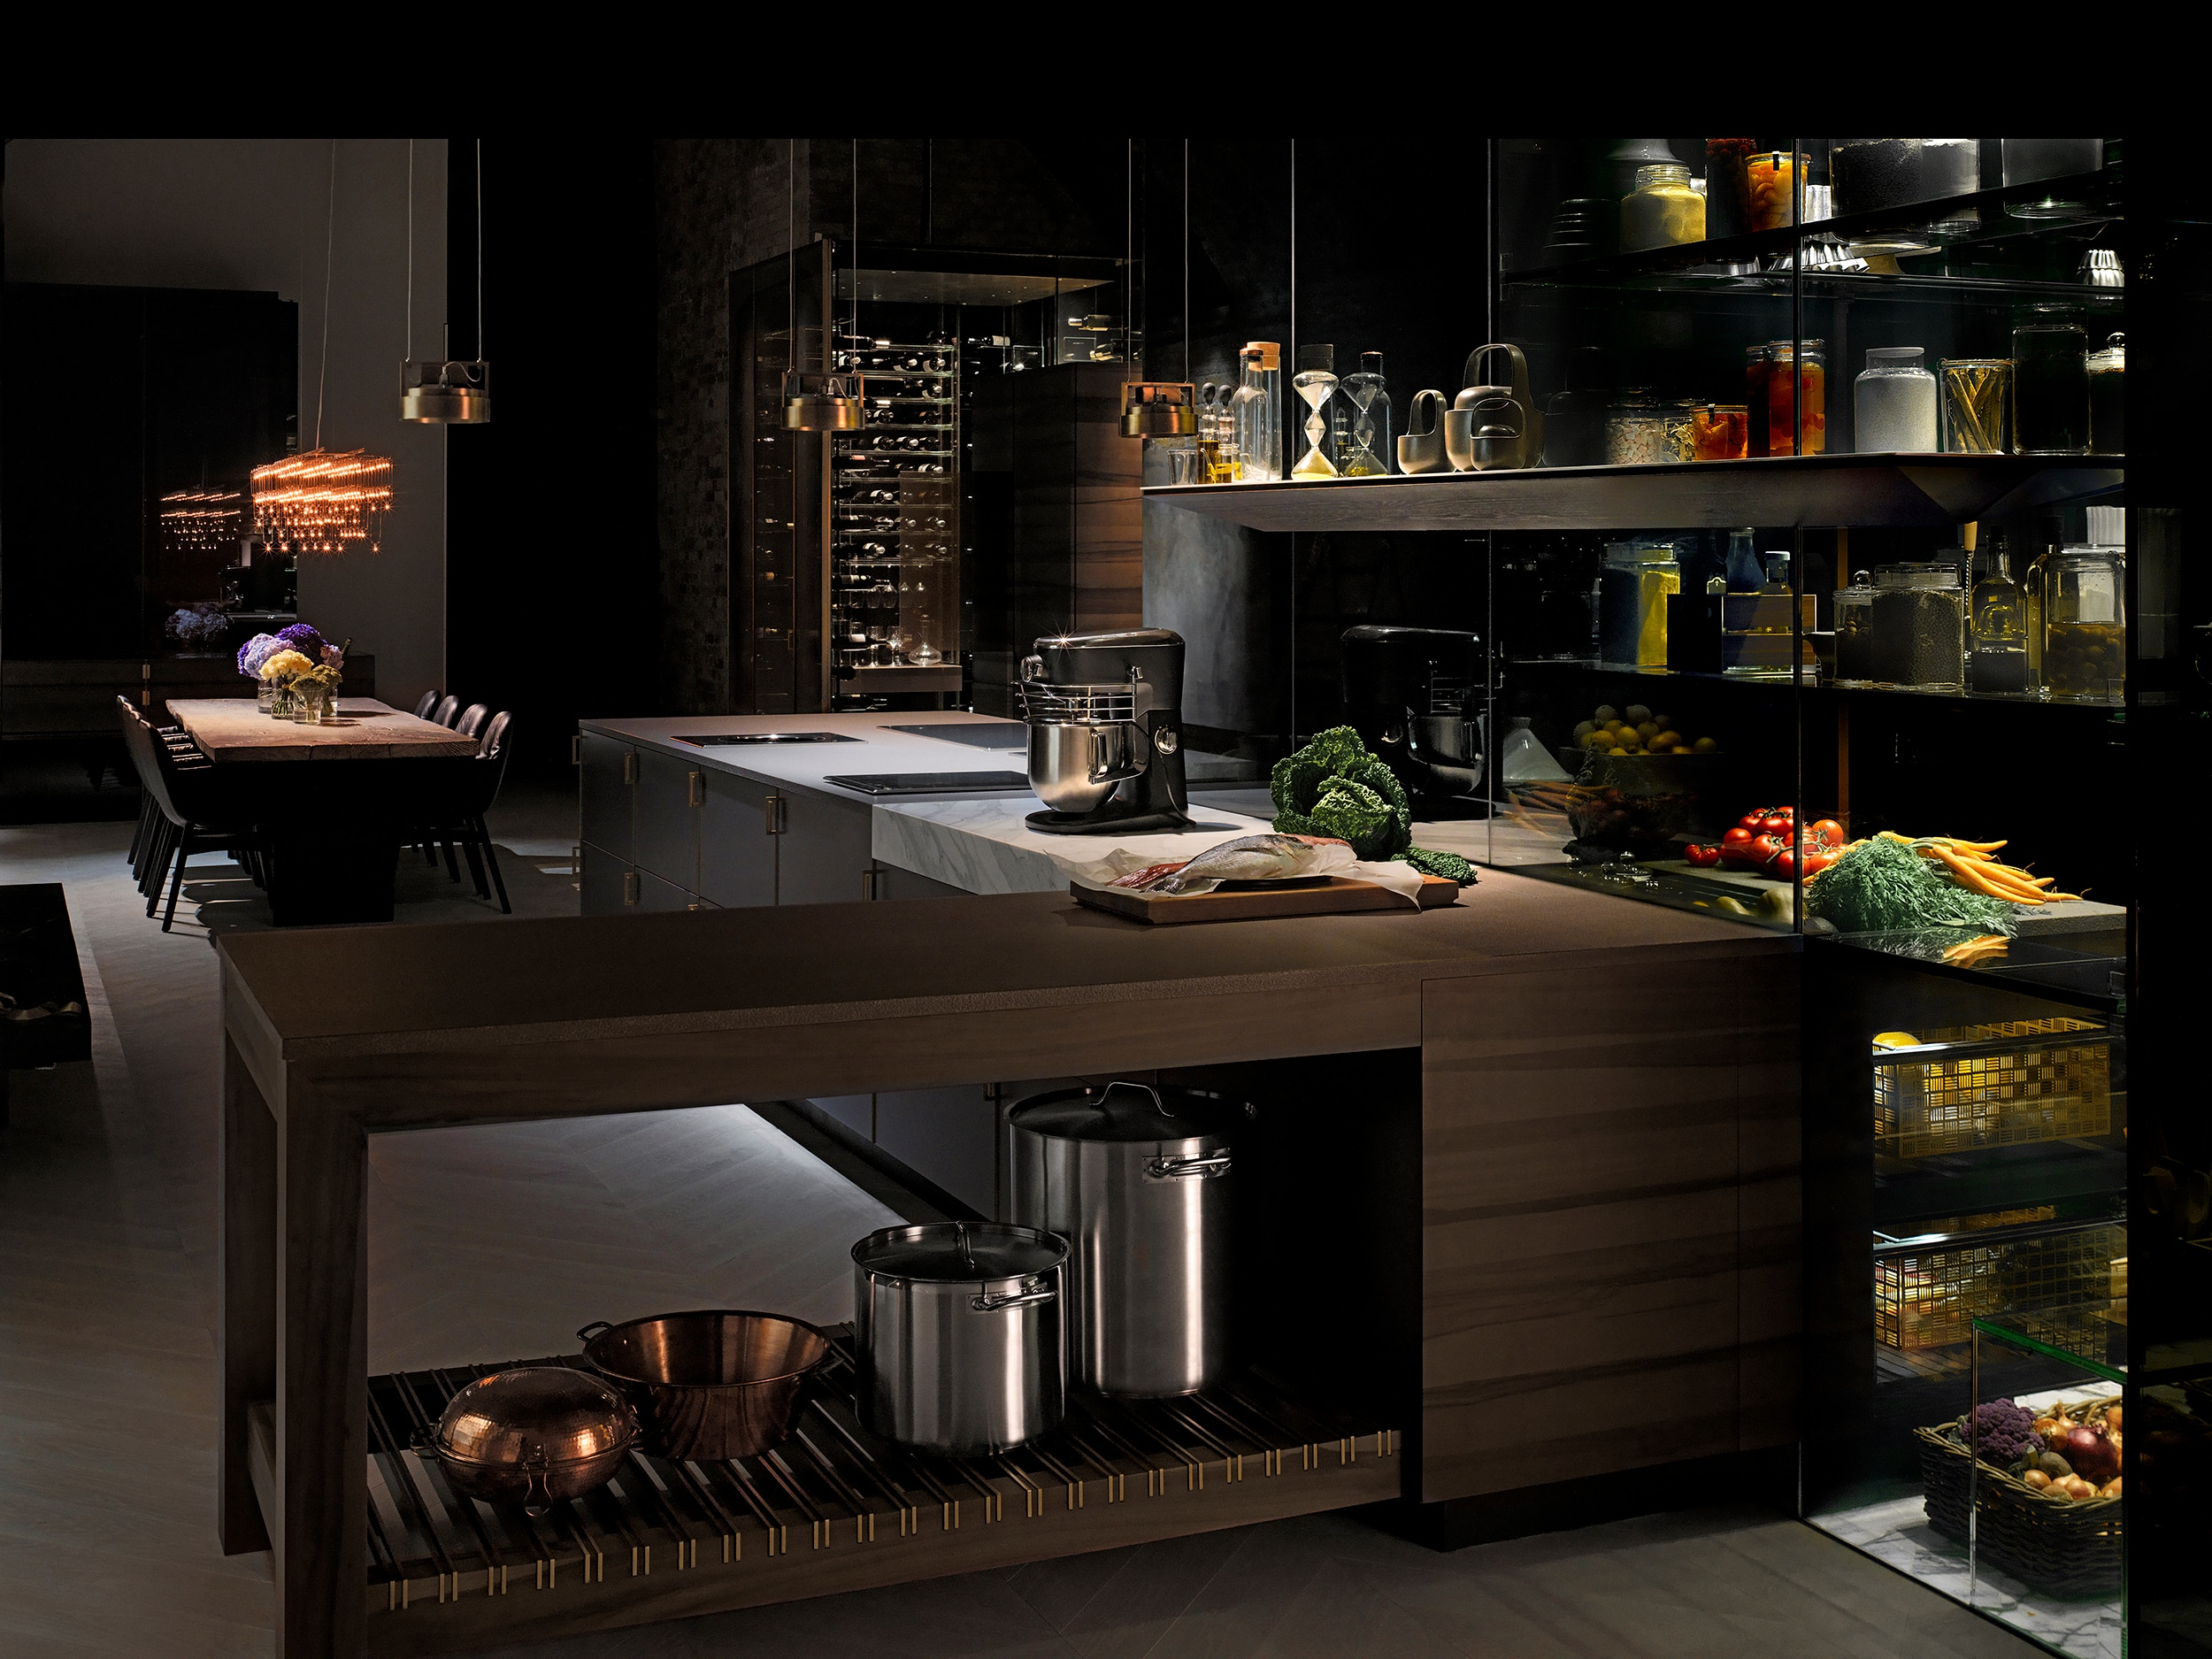 Küche Poggenpohl Electrolux And Poggenpohl Introduce Pioneering Kitchen